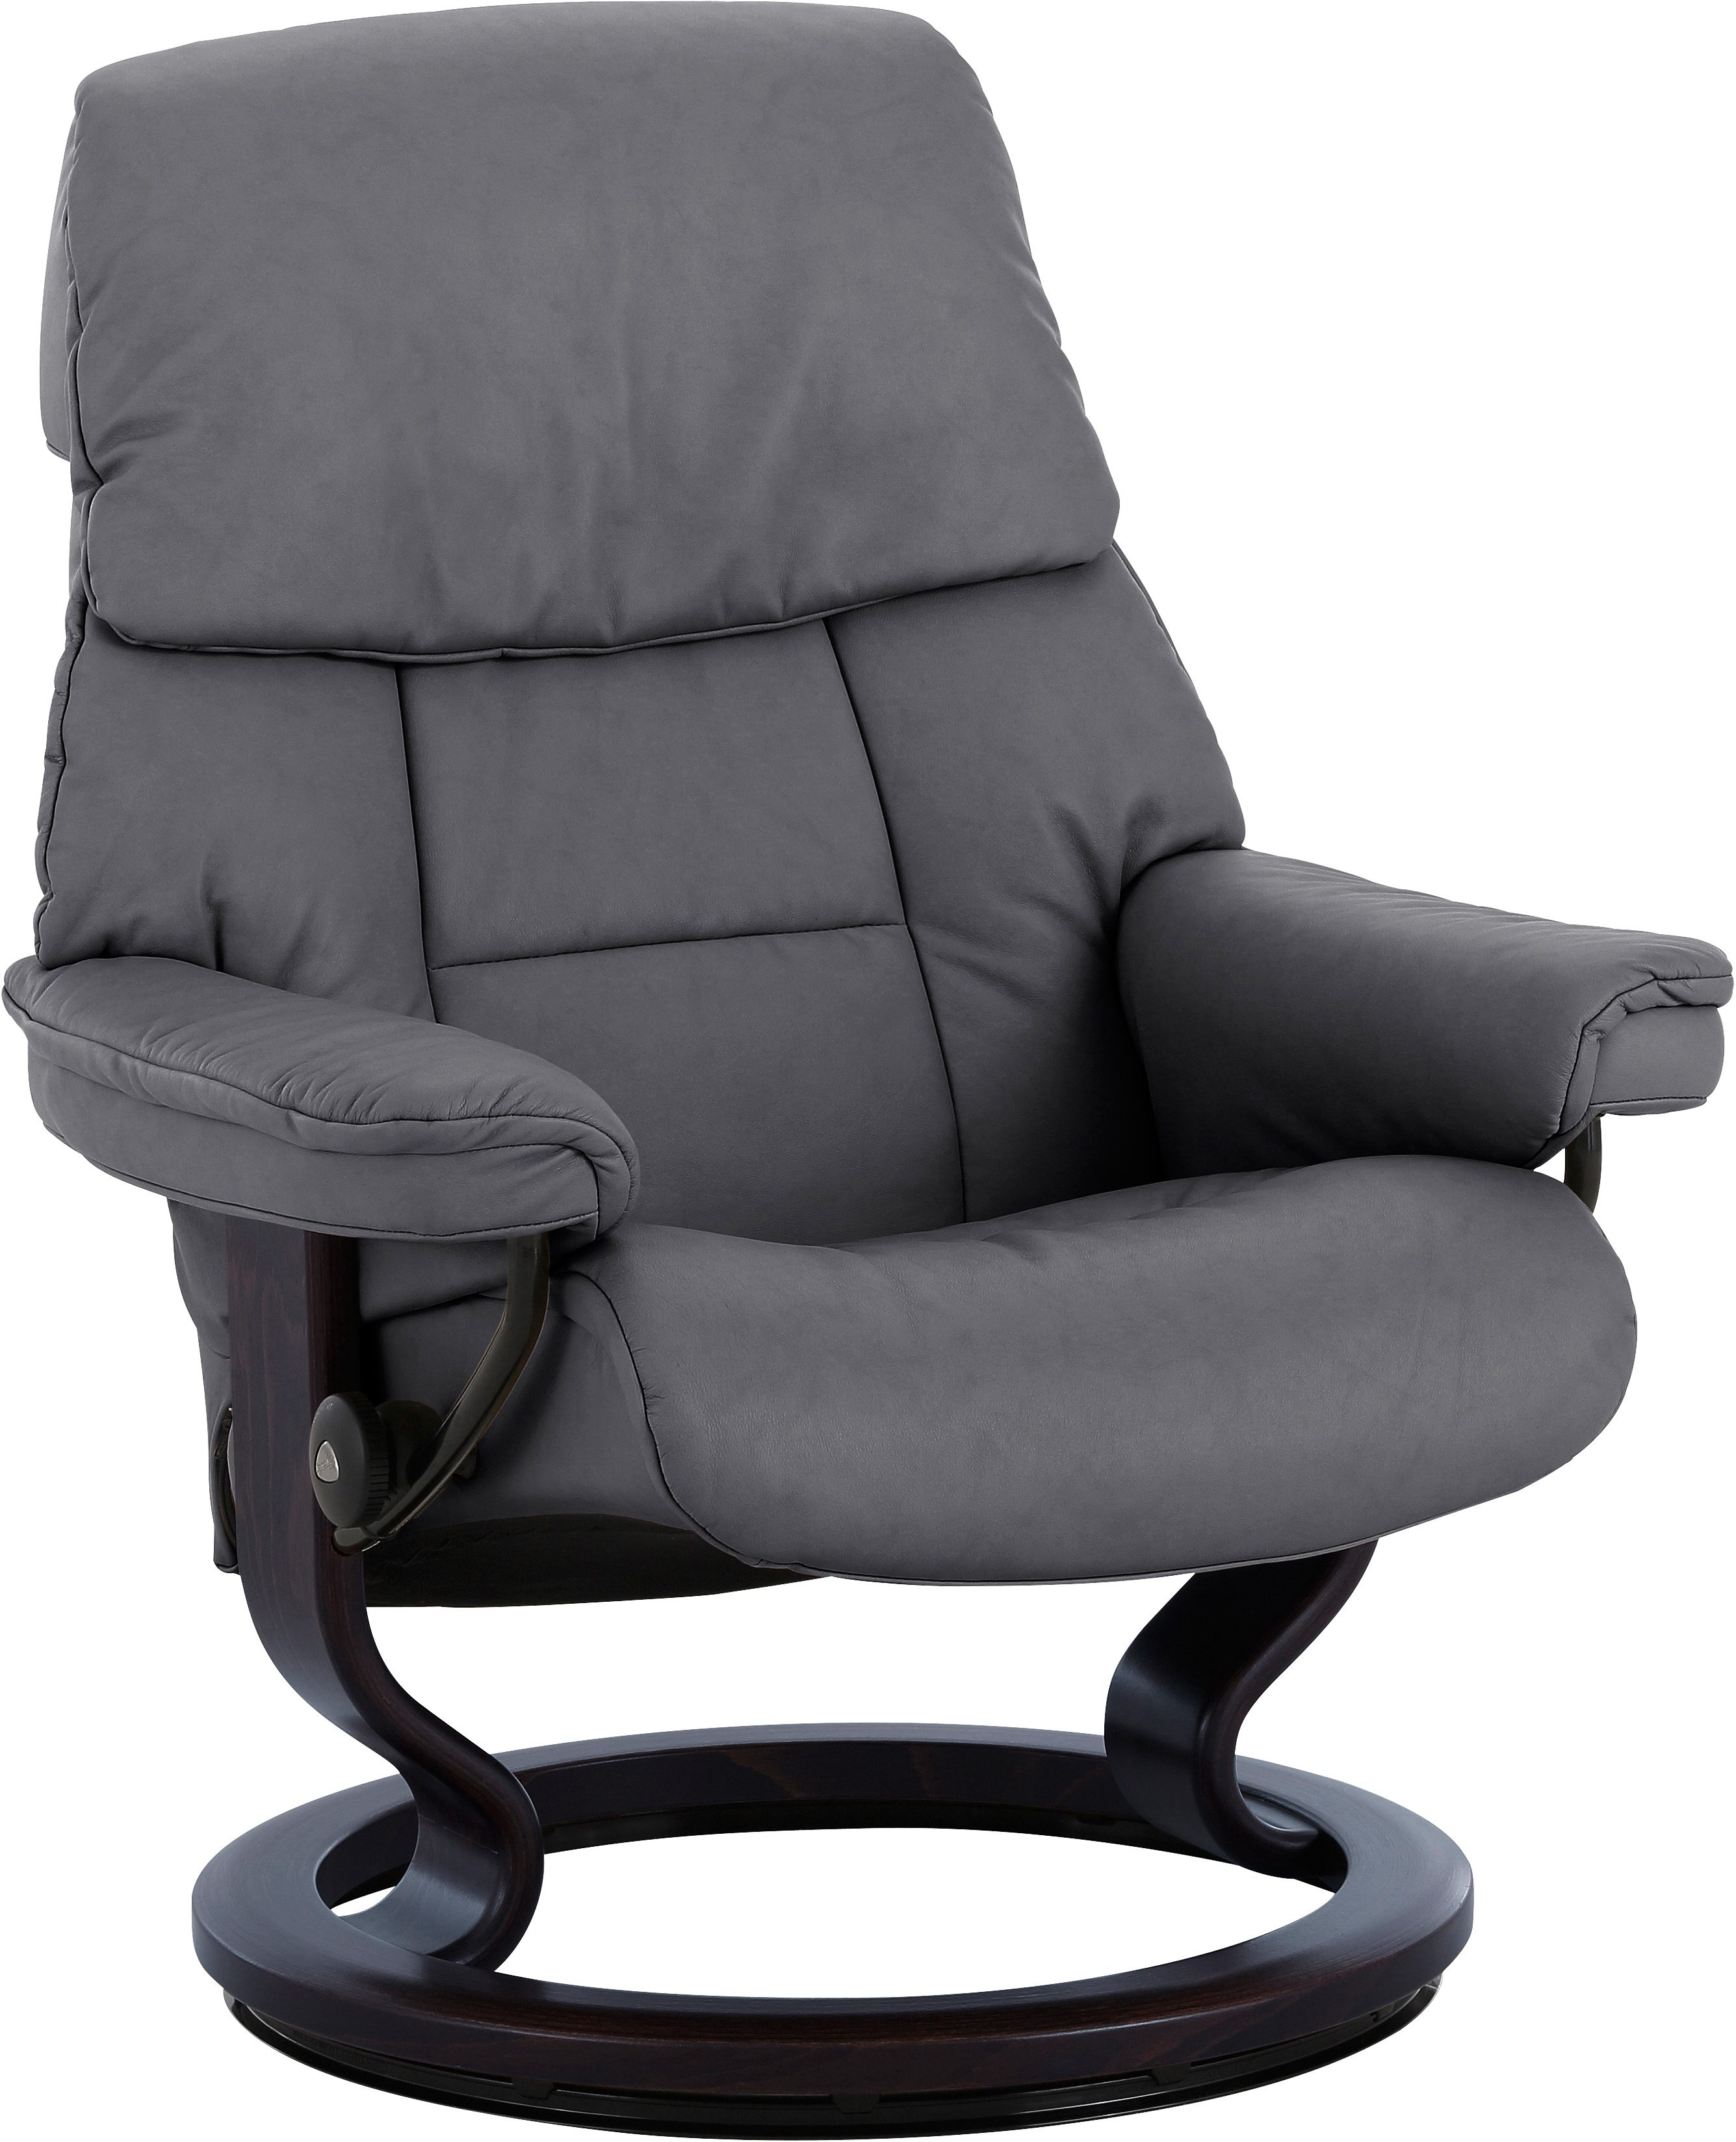 Relaxsessel Stressless Stressless® Relaxsessel »ruby« Mit Classic Base, Größe M